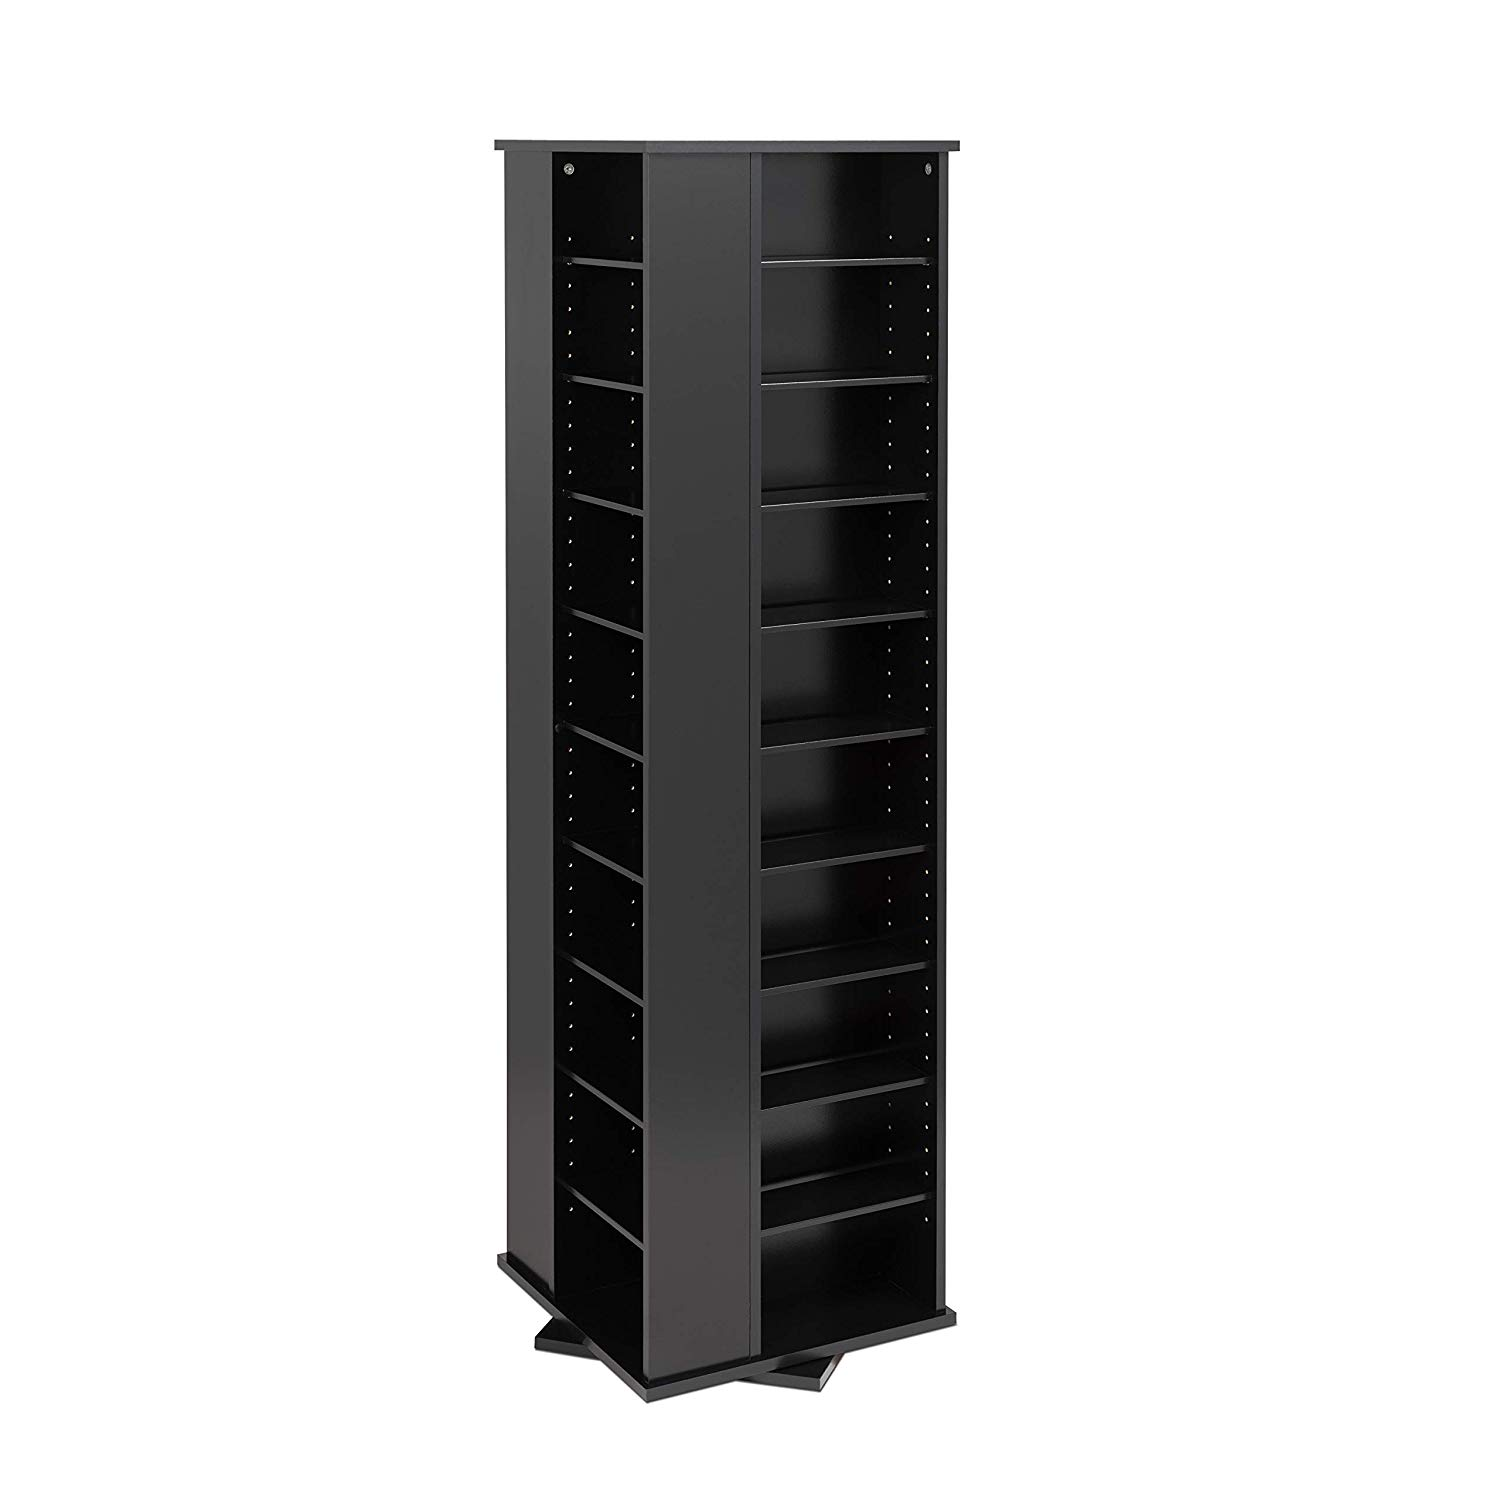 Charmant Cheap Wood Cd Storage Tower, Find Wood Cd Storage Tower ...